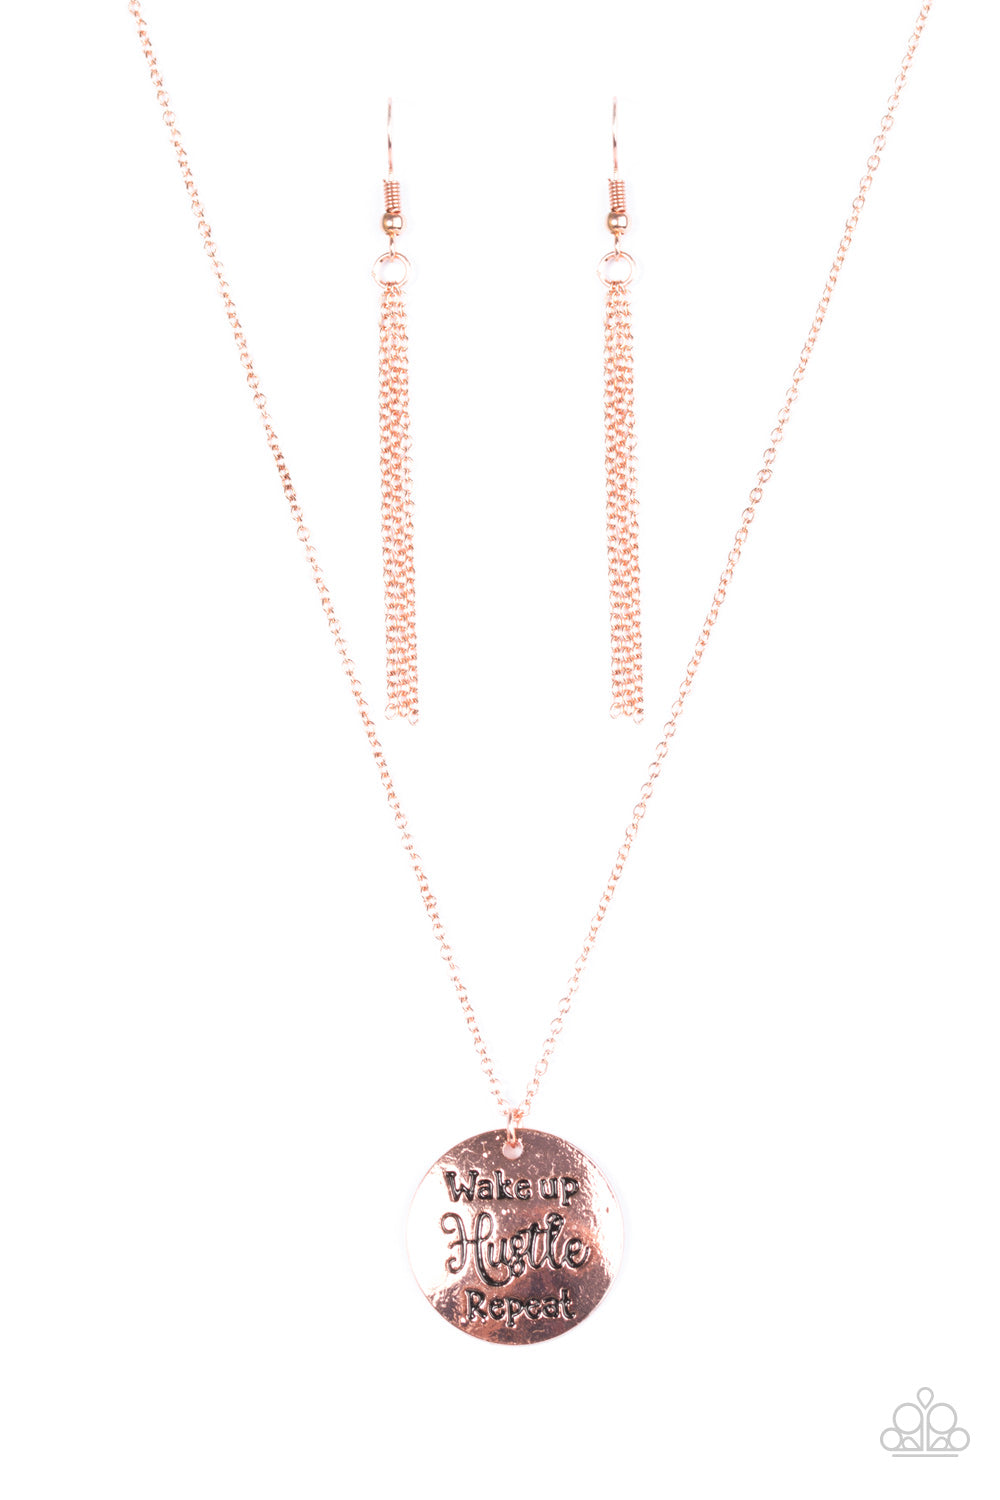 five-dollar-jewelry-hustle-on-repeat-copper-necklace-paparazzi-accessories